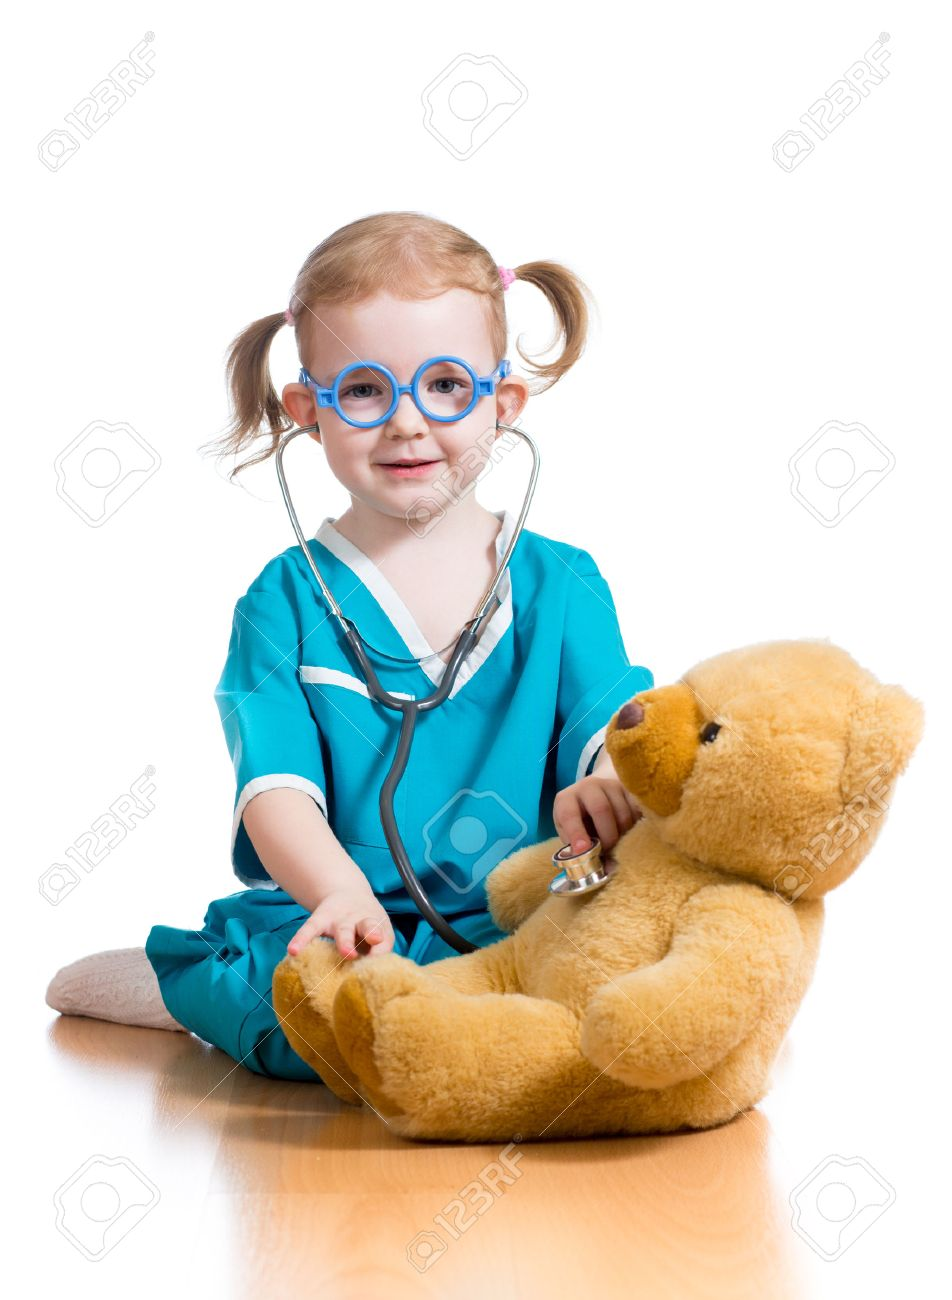 doctor kid Stock Photo - kid playing doctor with toy